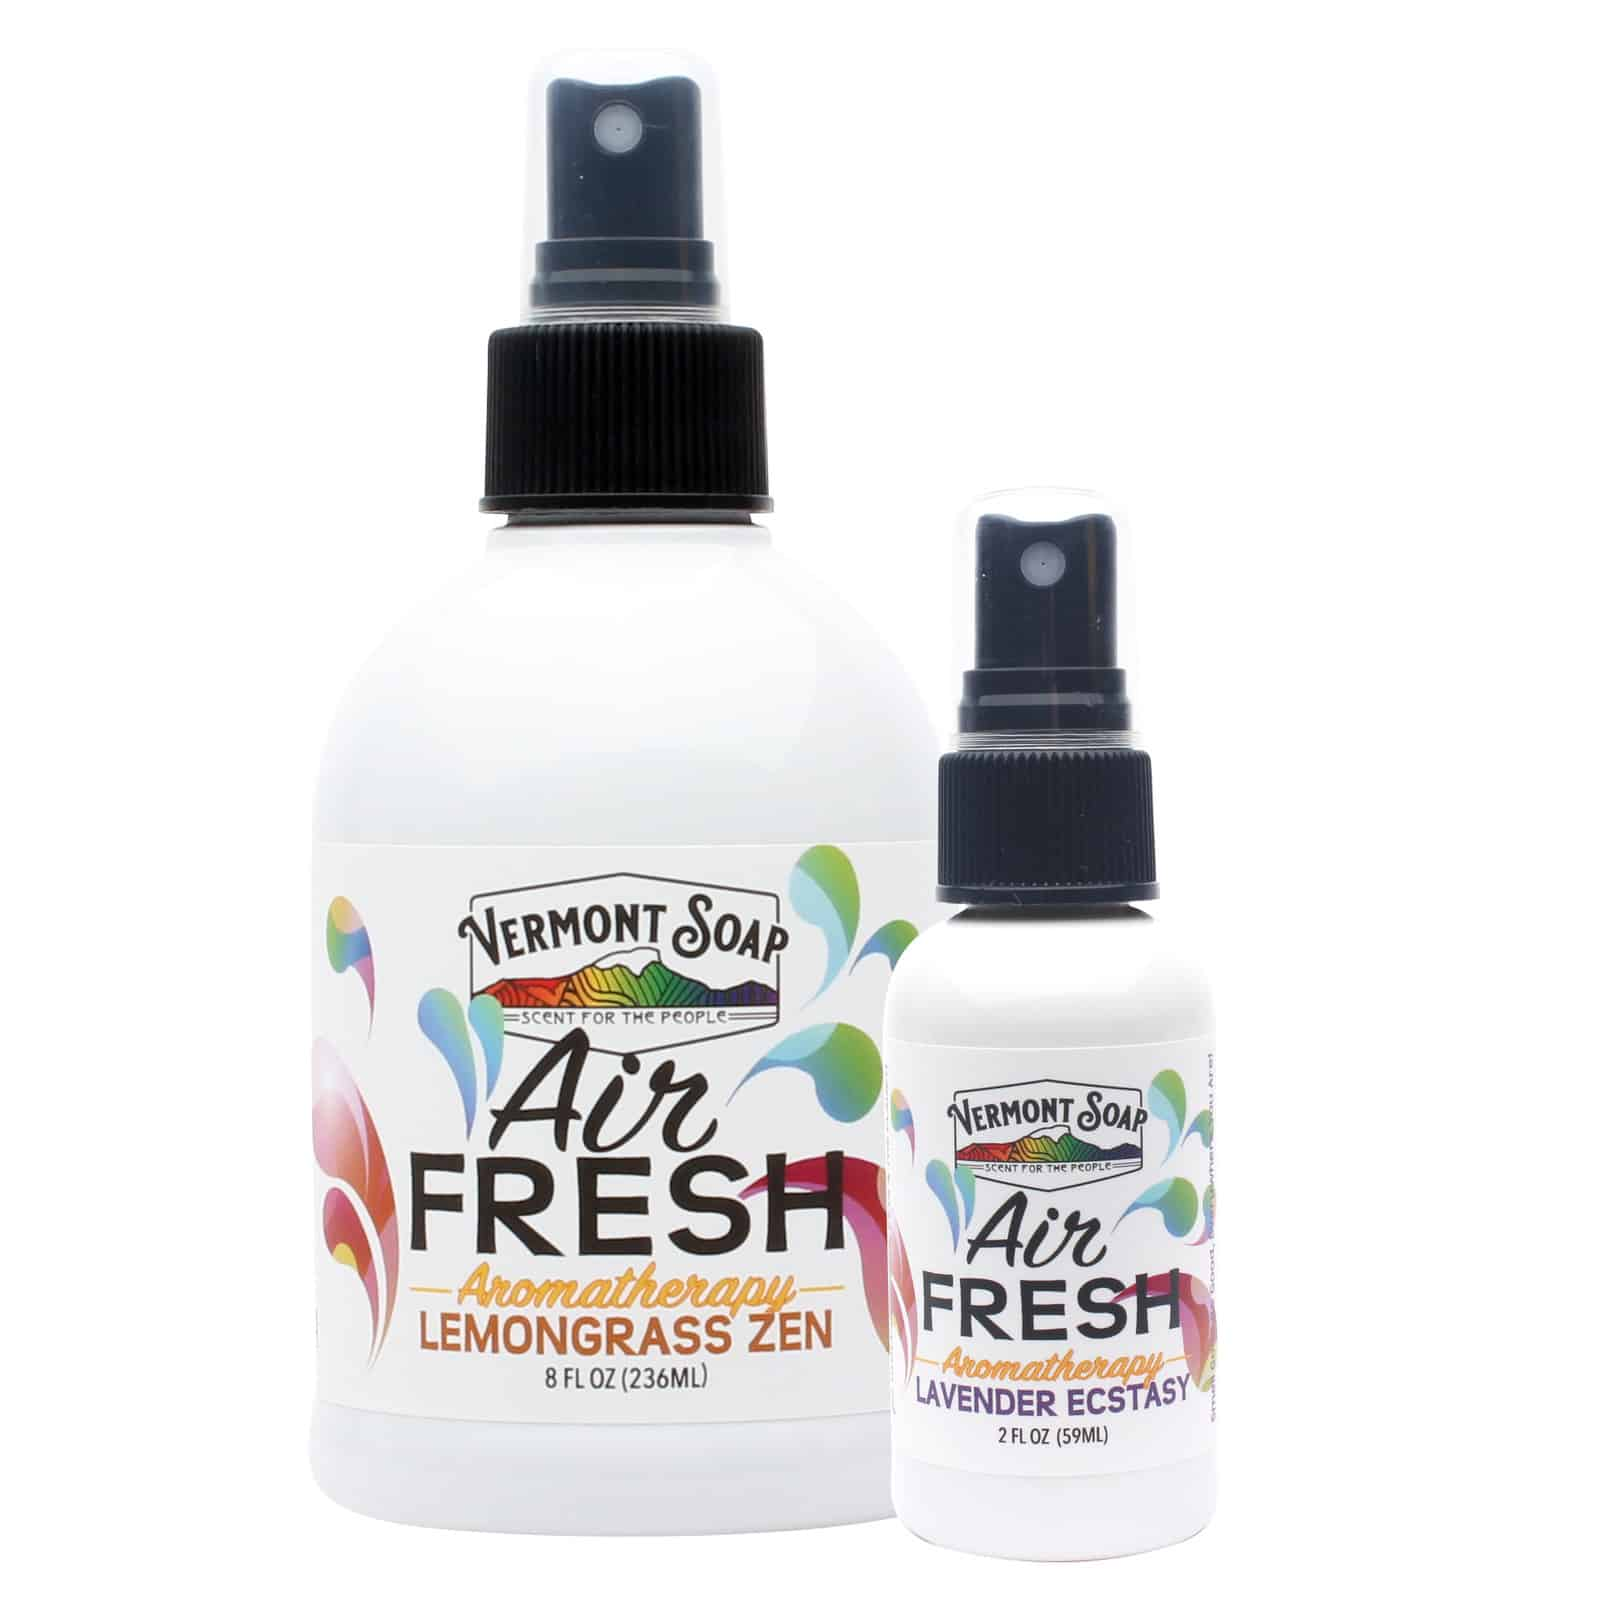 SFTP Air Fresh 2oz and 8oz